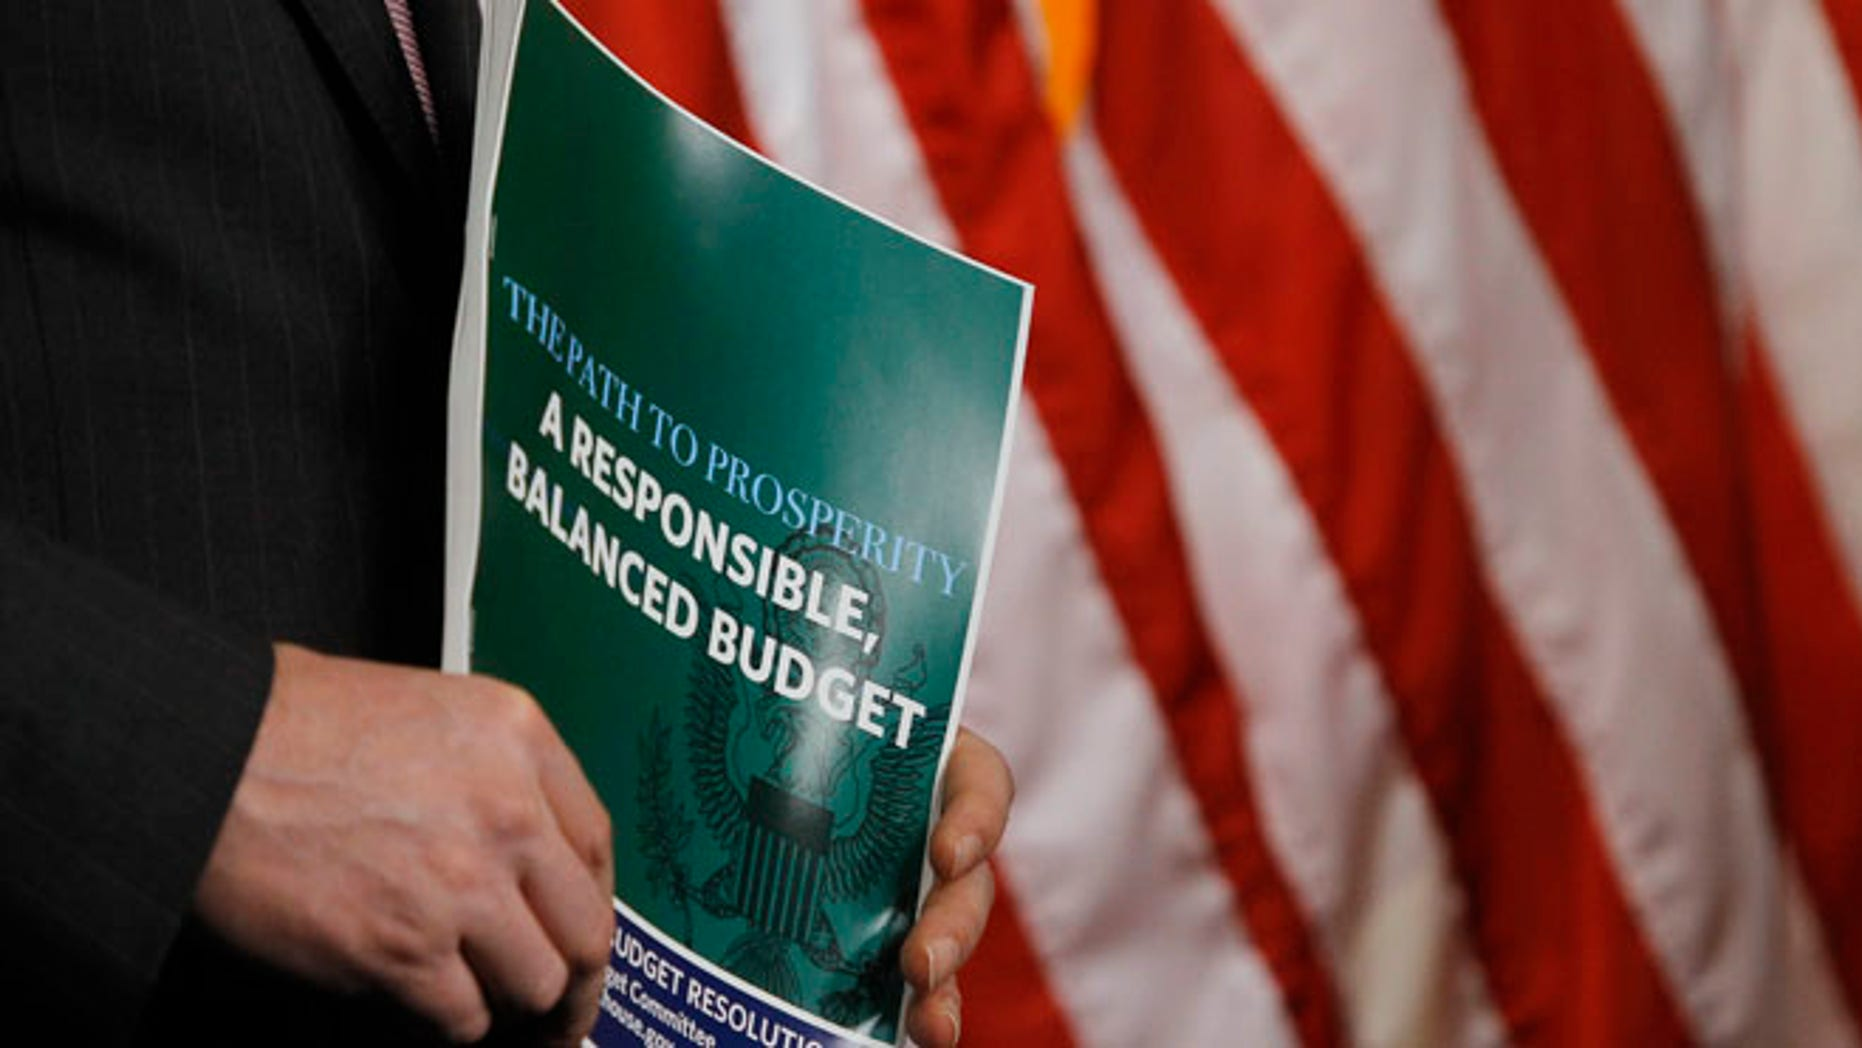 FILE: March 12, 2013: A copy of the Republican Party's proposals for a balanced budget presented on Capitol Hill, in Washington, D.C.